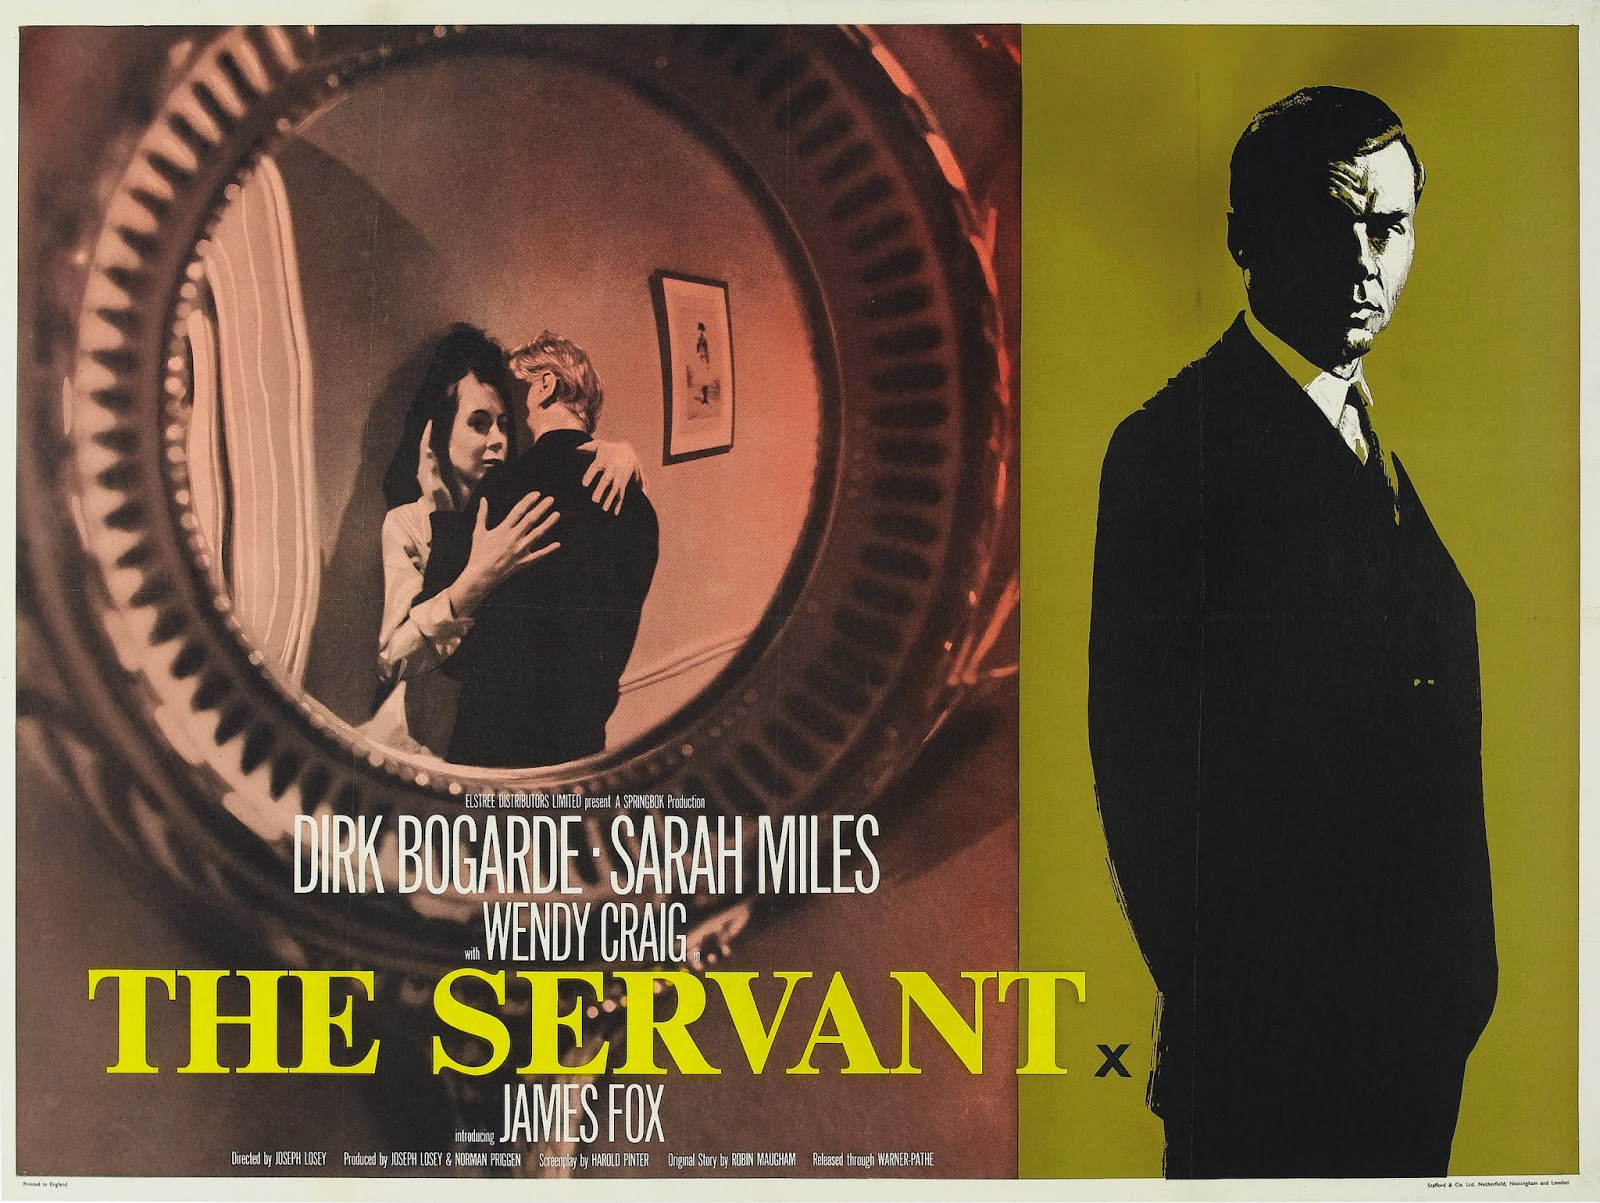 THE SERVANT - UK Poster 1